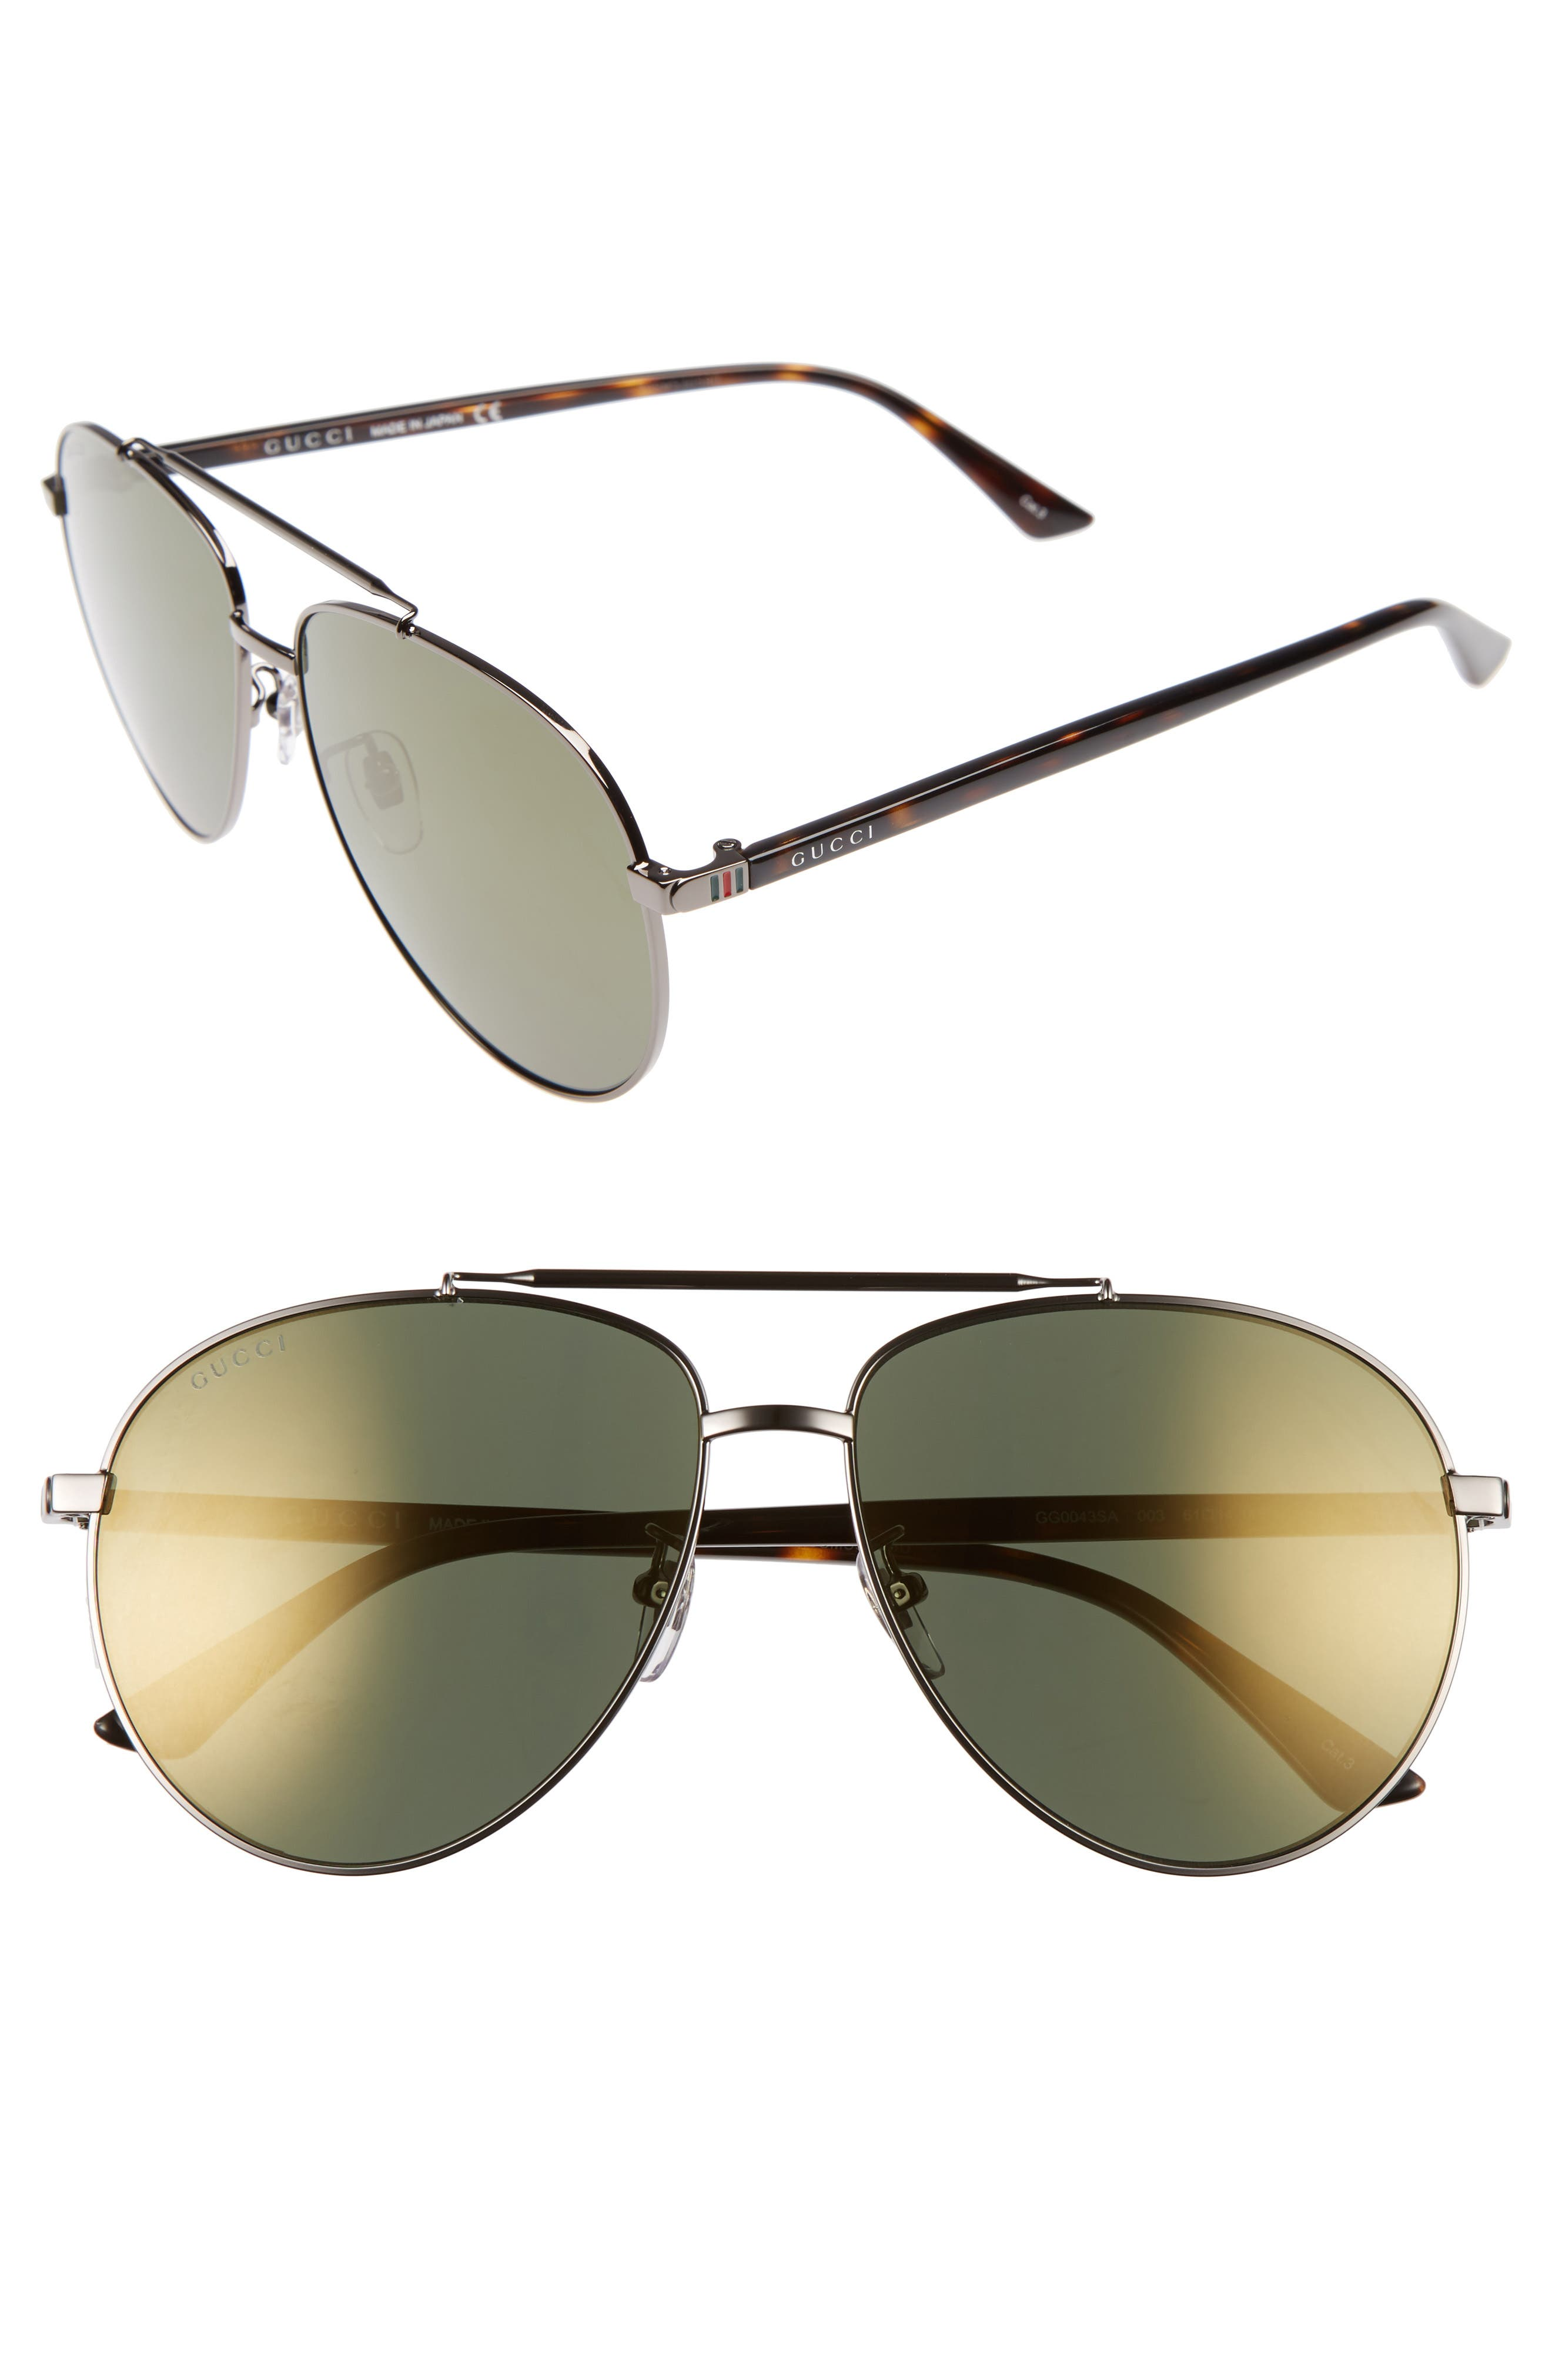 Retro Web 61mm Aviator Sunglasses,                             Alternate thumbnail 2, color,                             RUTHENIUM W.MIRROR GUN LENS